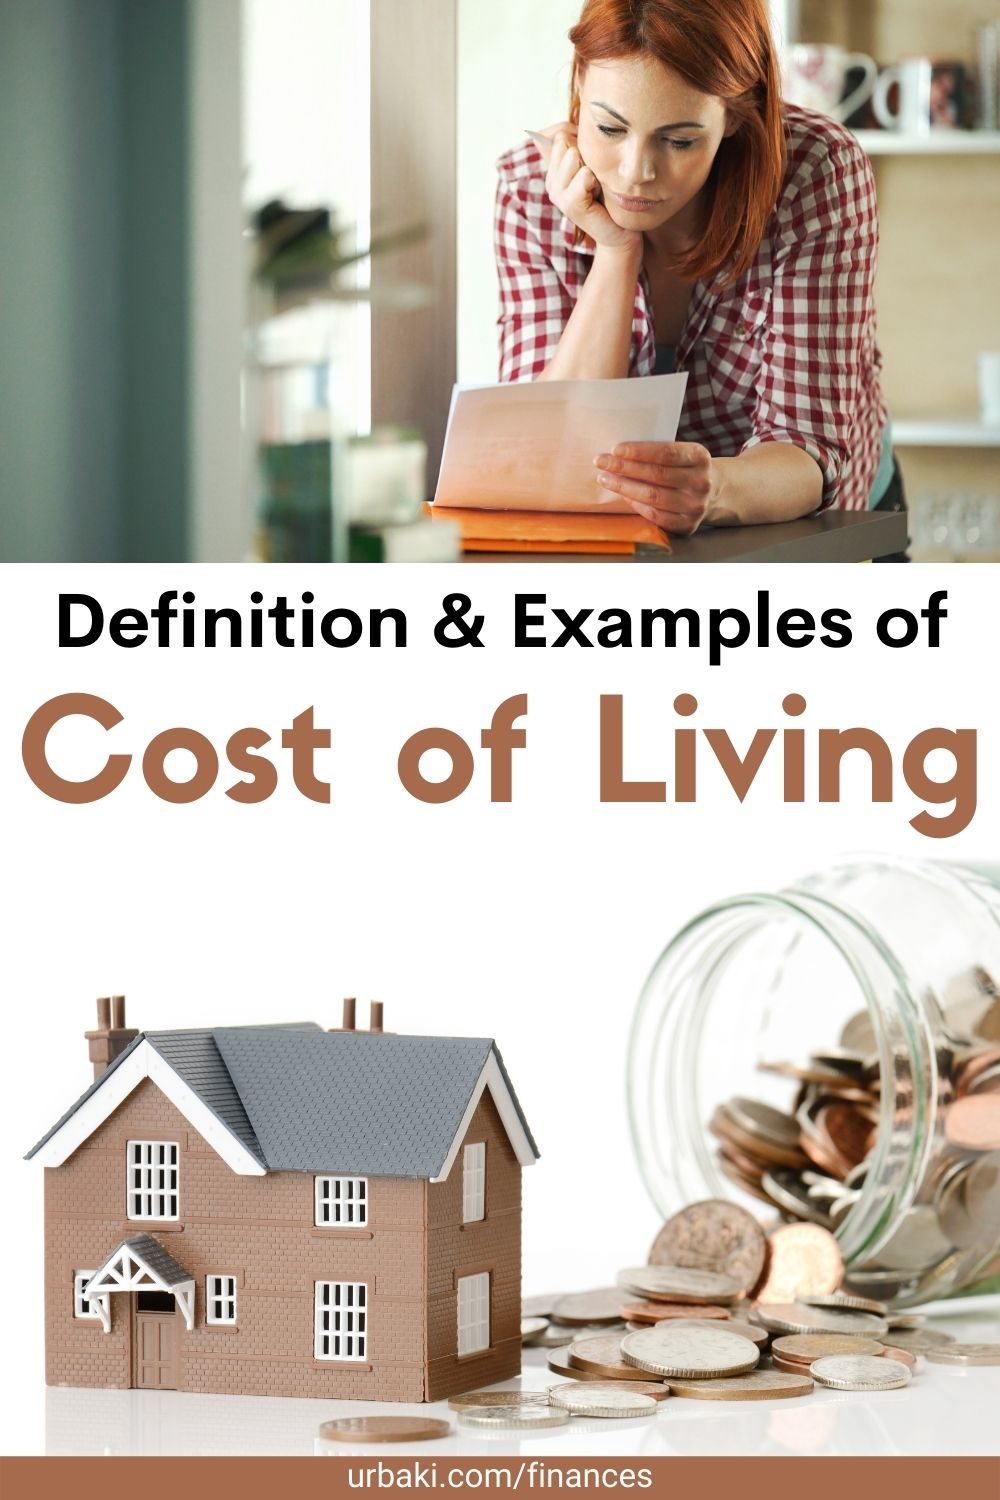 Definition & Examples of Cost of Living